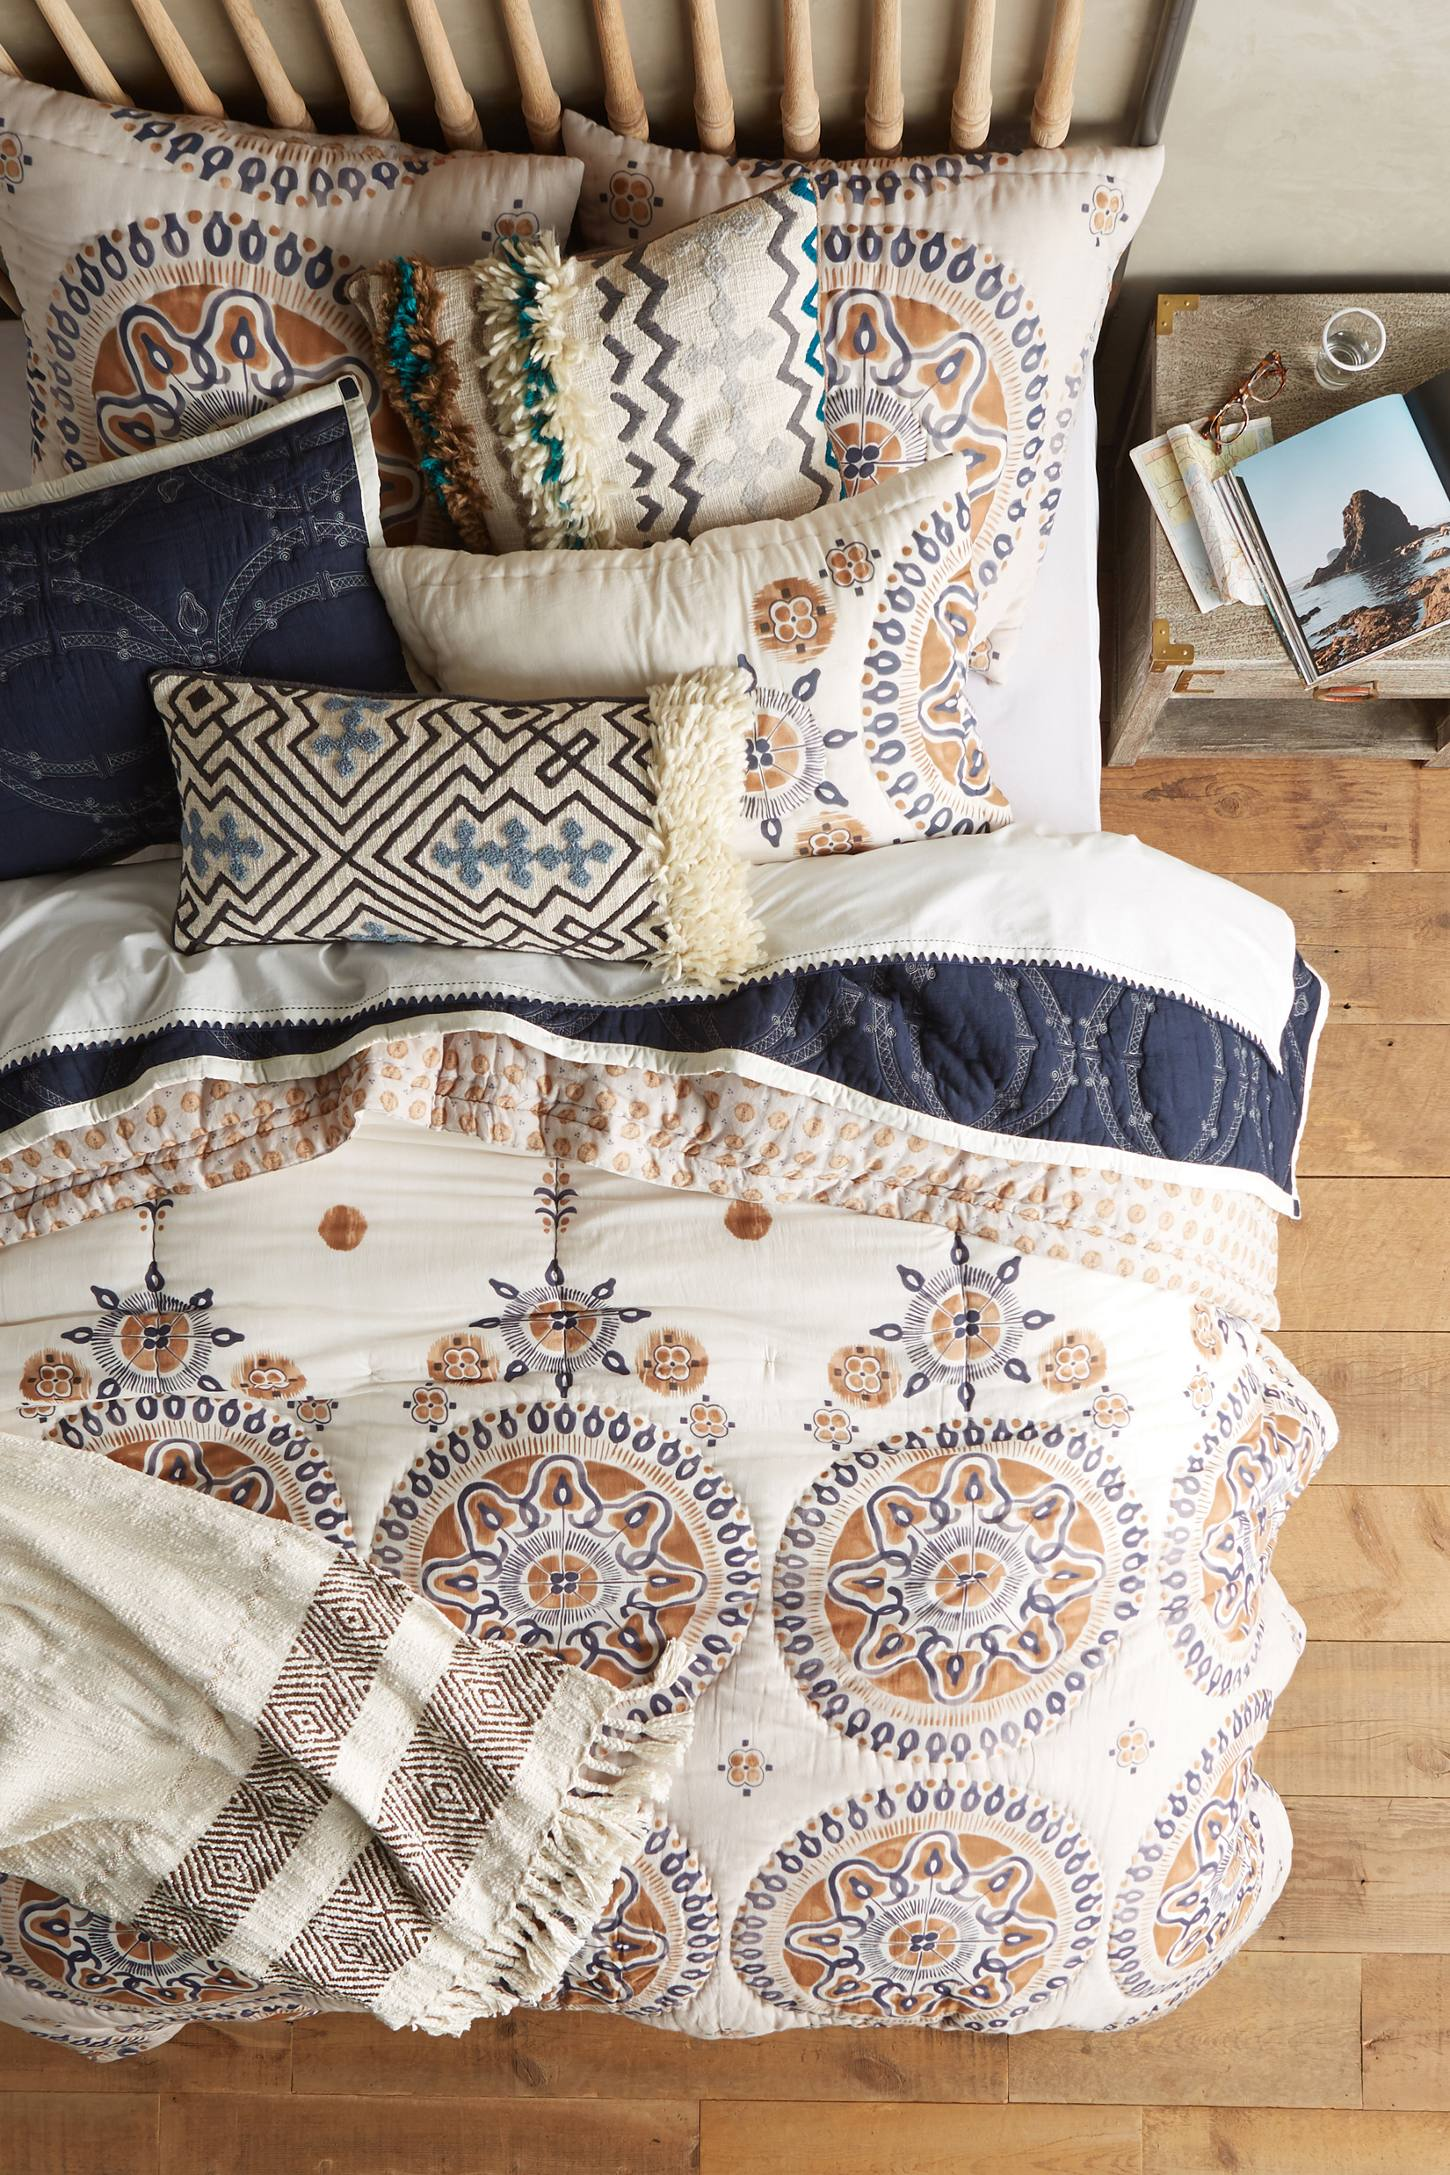 Anthropologie bedding - Anthropologie Bedding 5